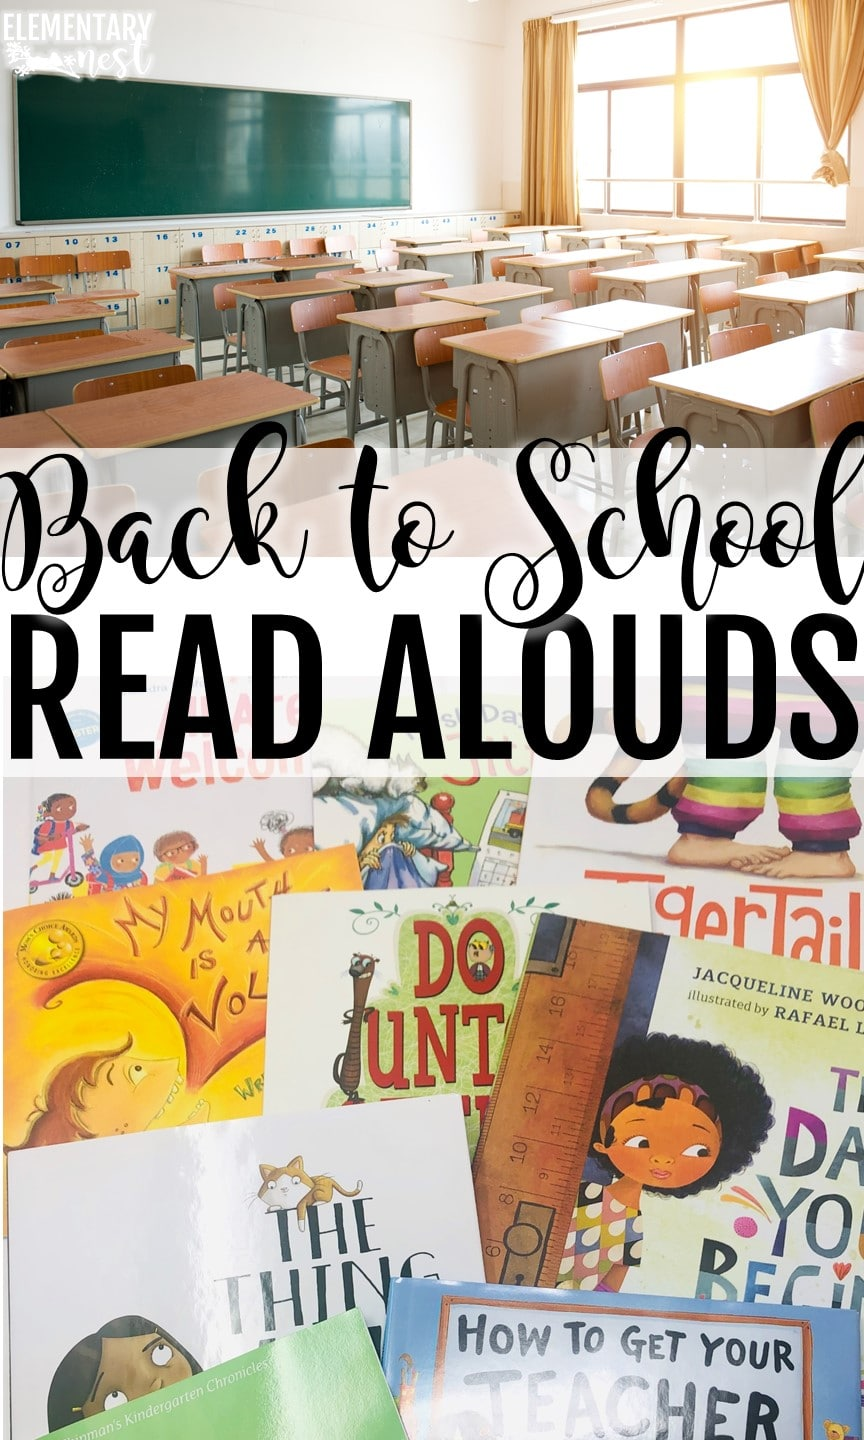 Back to school read aloud list for primary students.